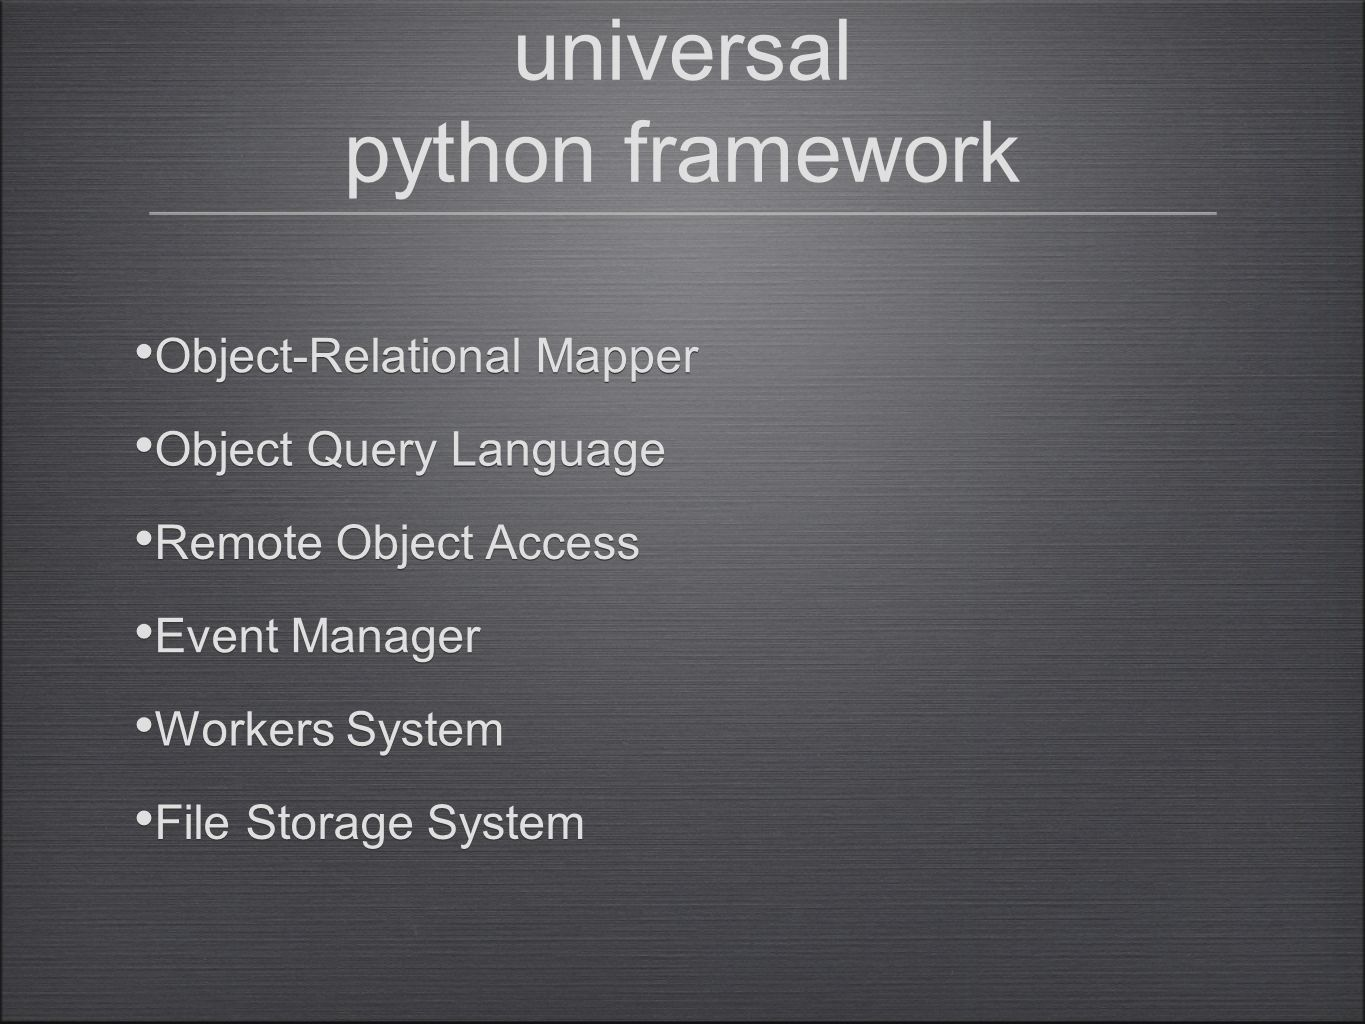 universal python framework Workers System Event Manager Remote Object Access Object Query Language Object-Relational Mapper File Storage System